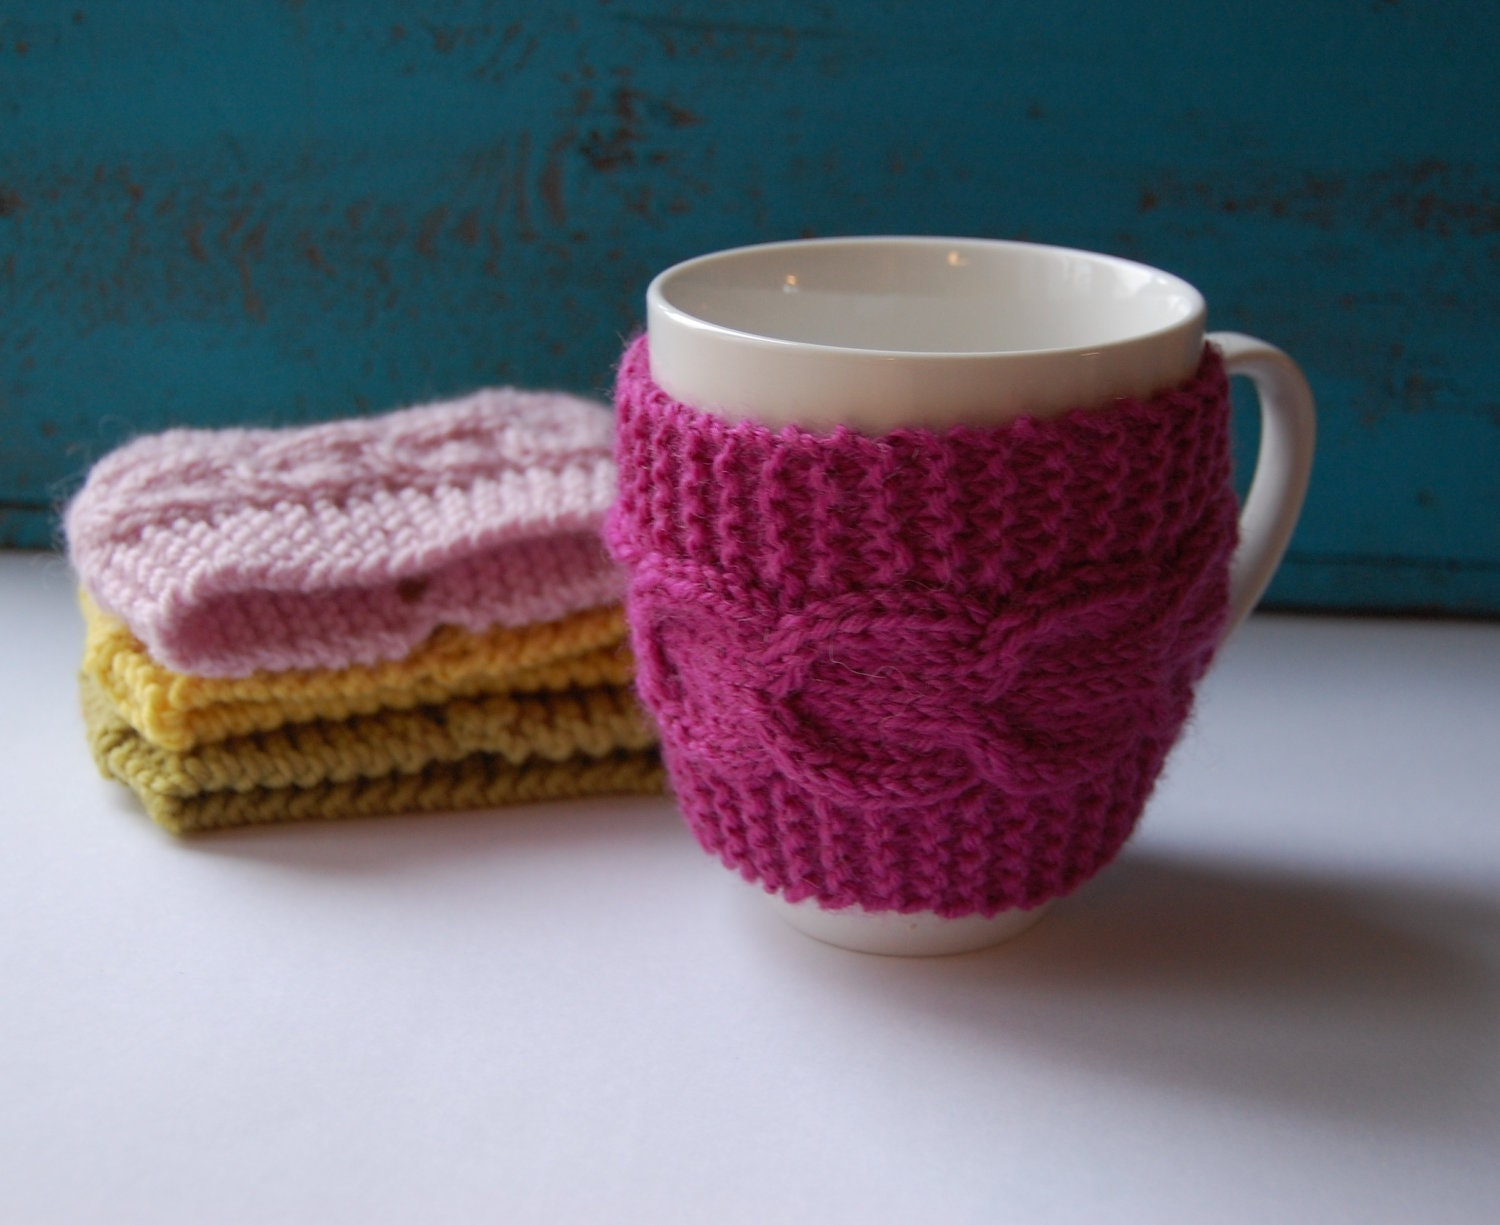 Items similar to Coffee cup cozy hand knit with cable pattern, mug sleeve / m...